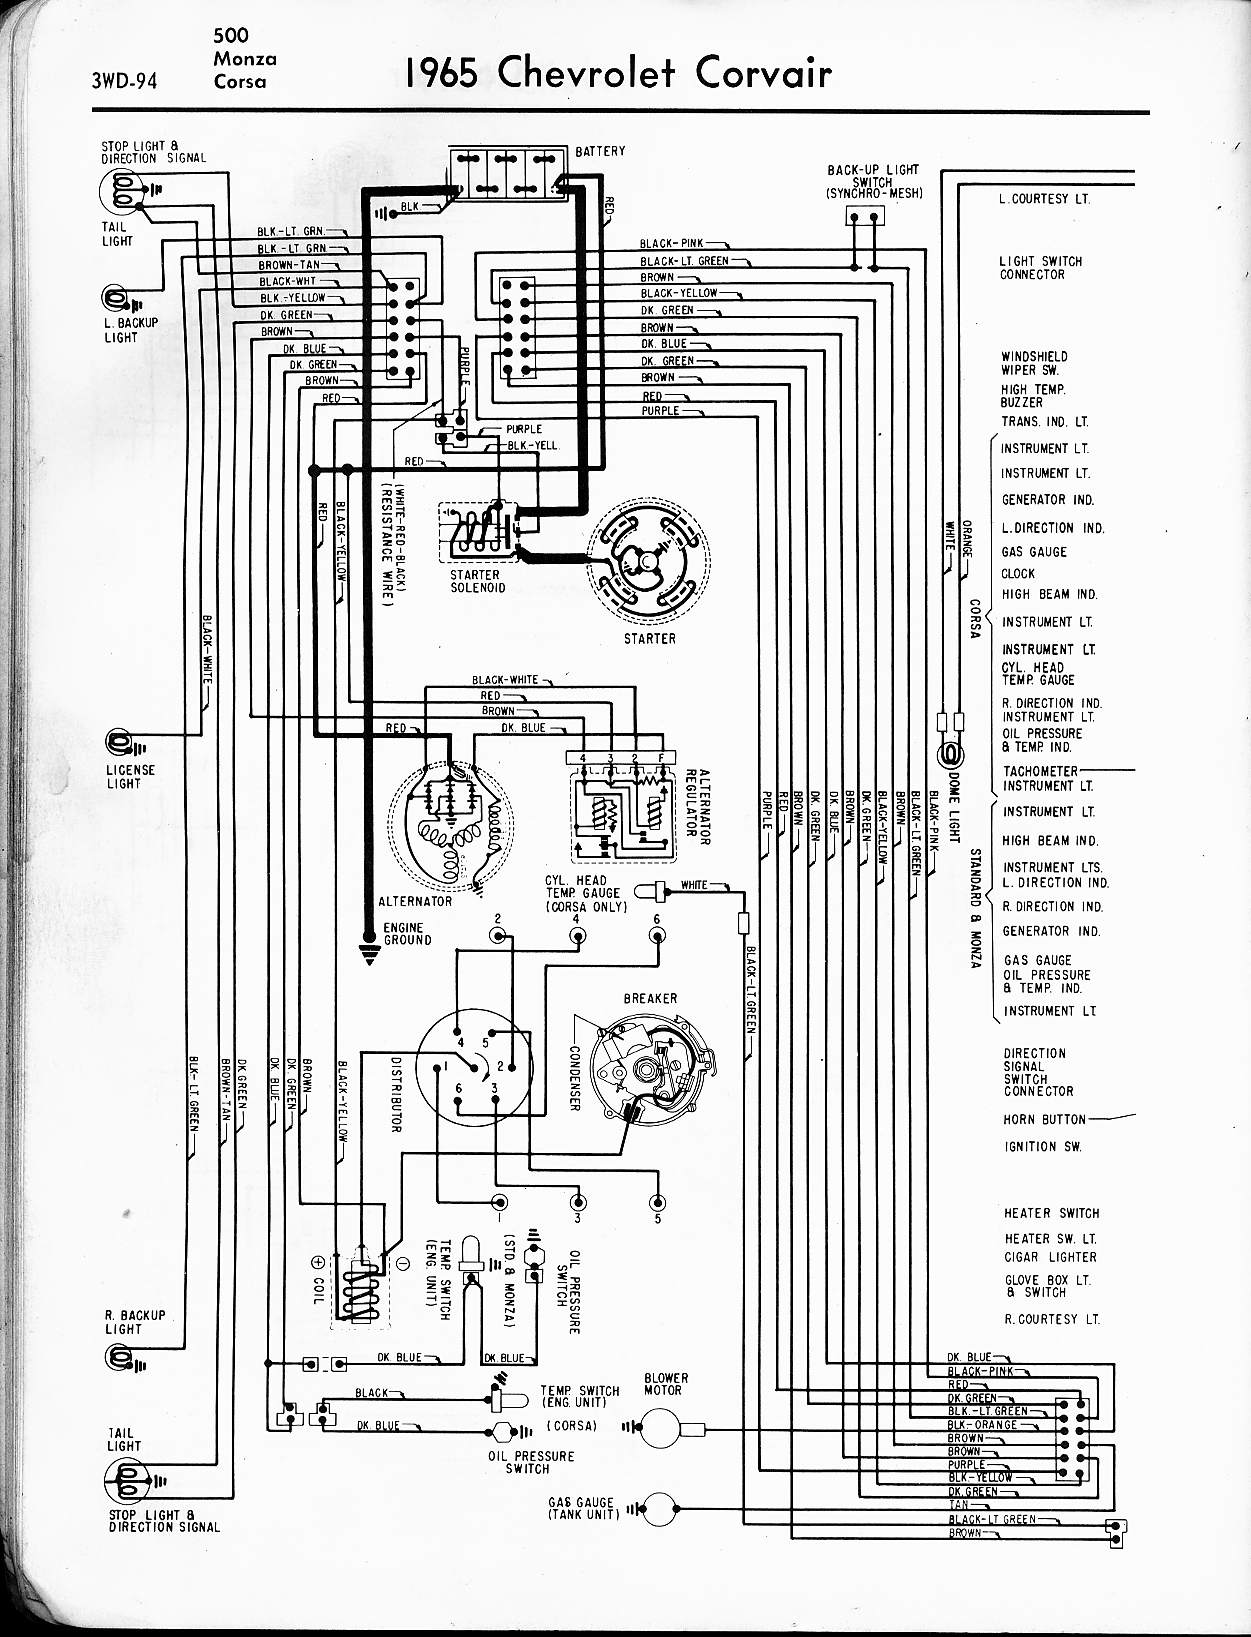 1966 Corvair Wiring Diagram Diagrams 1937 Ford Ignition 1962 Library Rh 92 Codingcommunity De 1967 Mustang